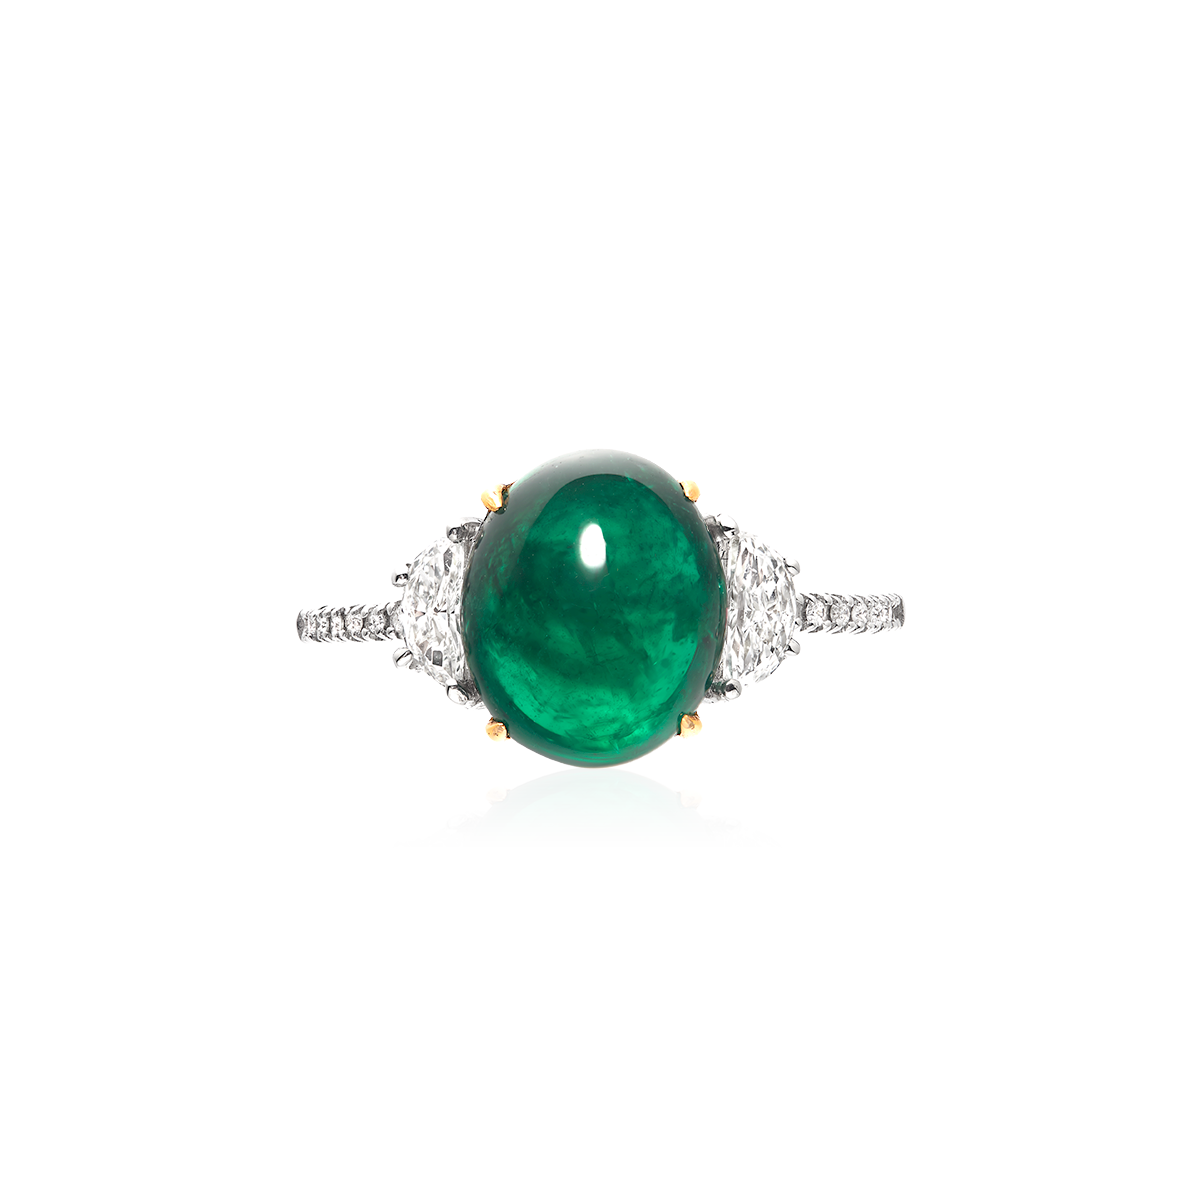 4.80克拉 蛋面祖母綠鑽戒